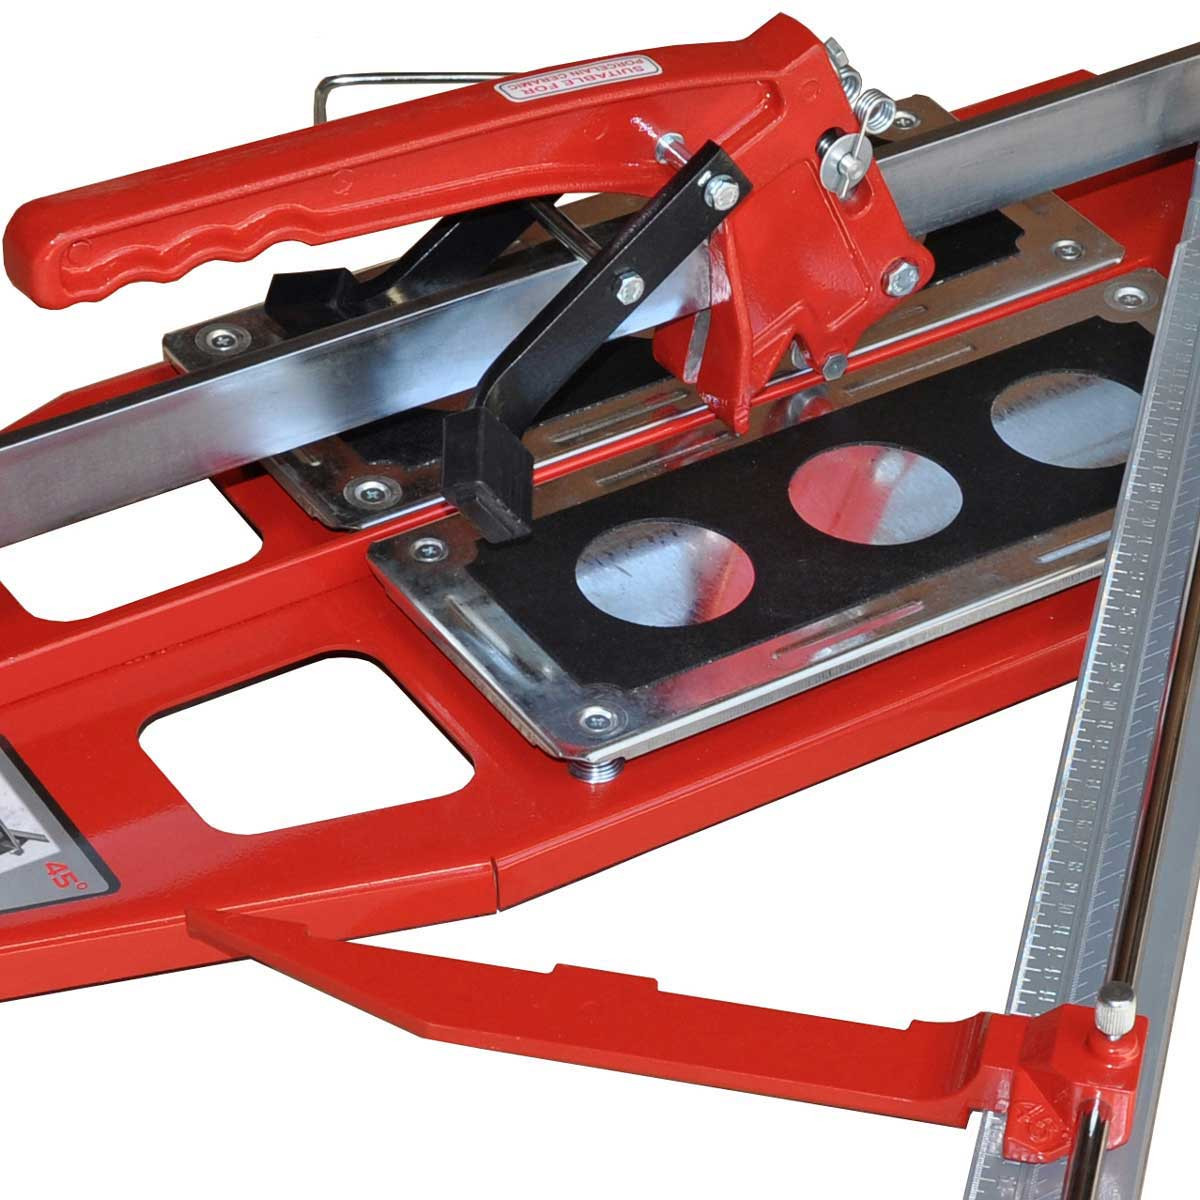 Kristal Mega-Cut tile cutter guide